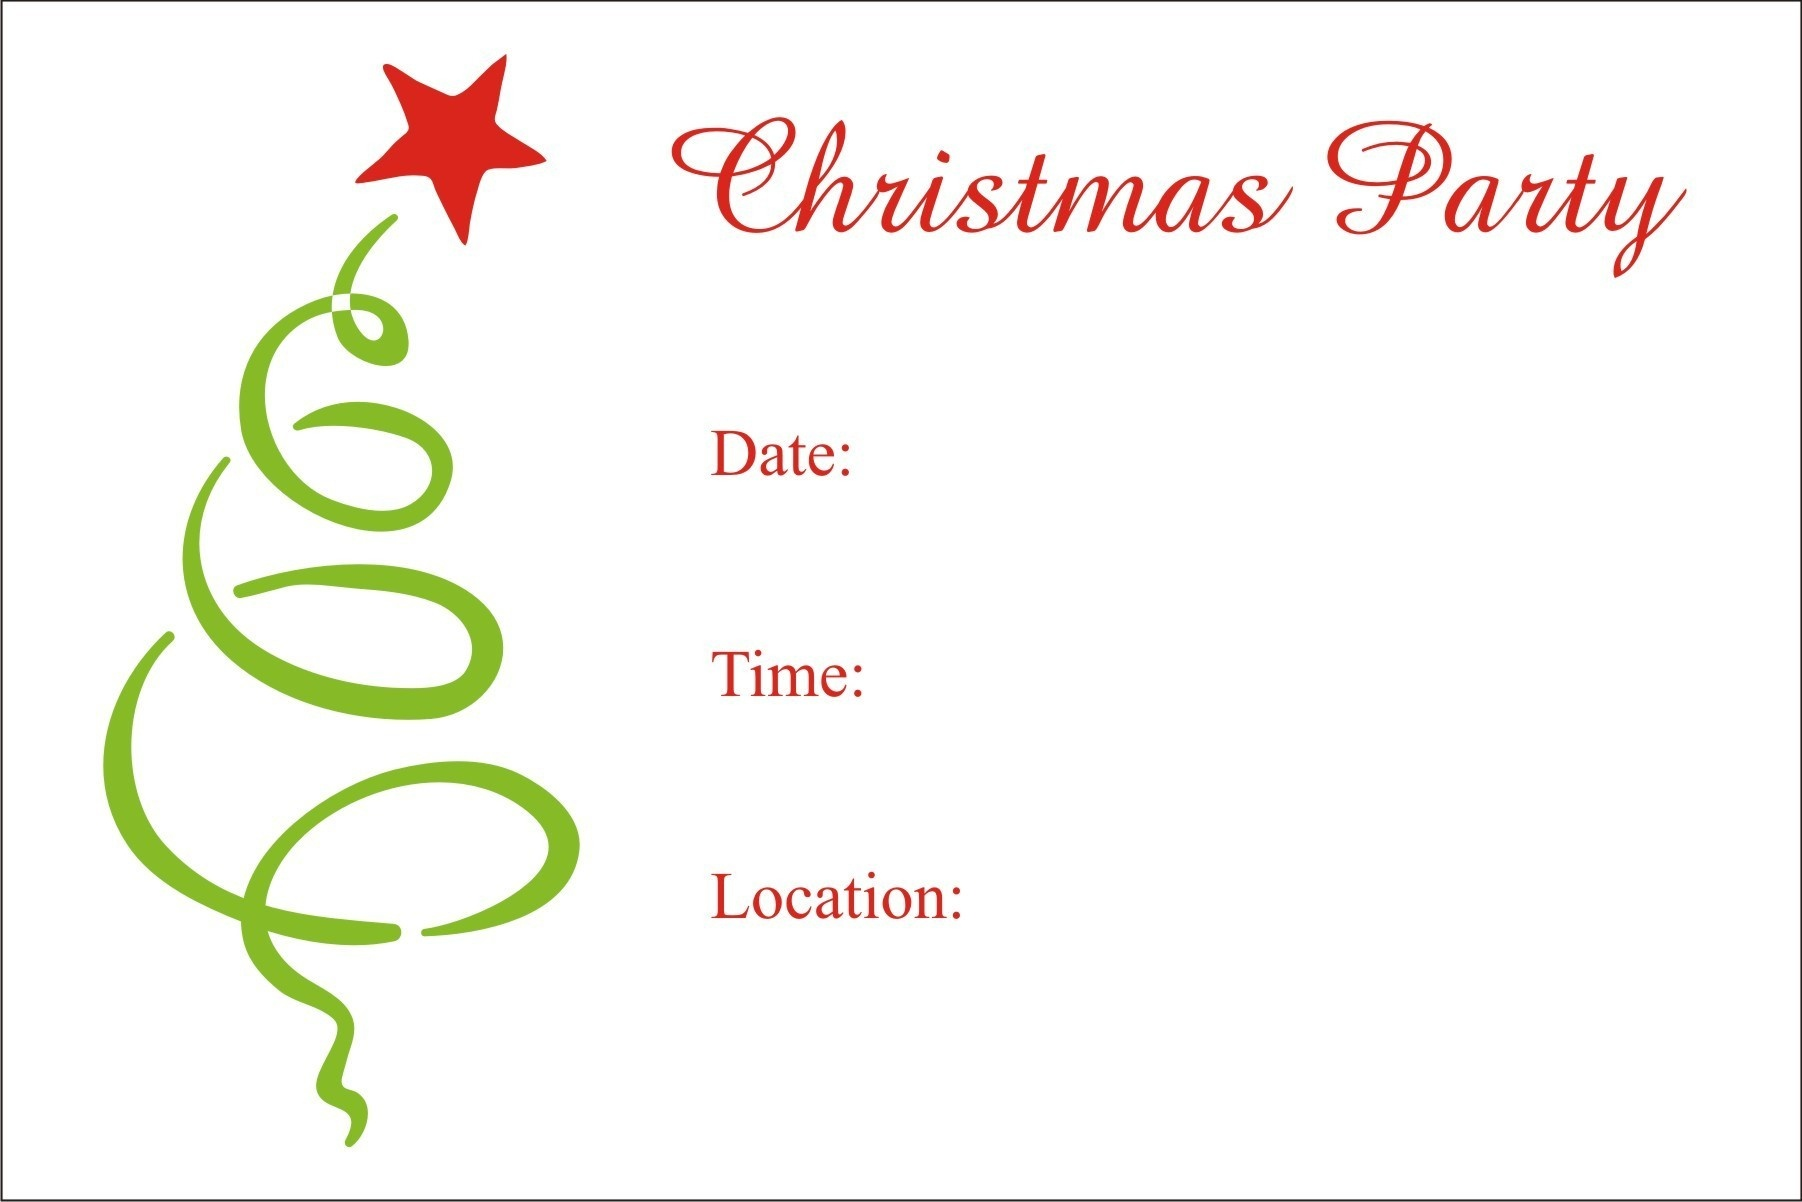 Free Printable Christmas Party Invitations Templates - Loveandrespect - Christmas Party Invitation Templates Free Printable